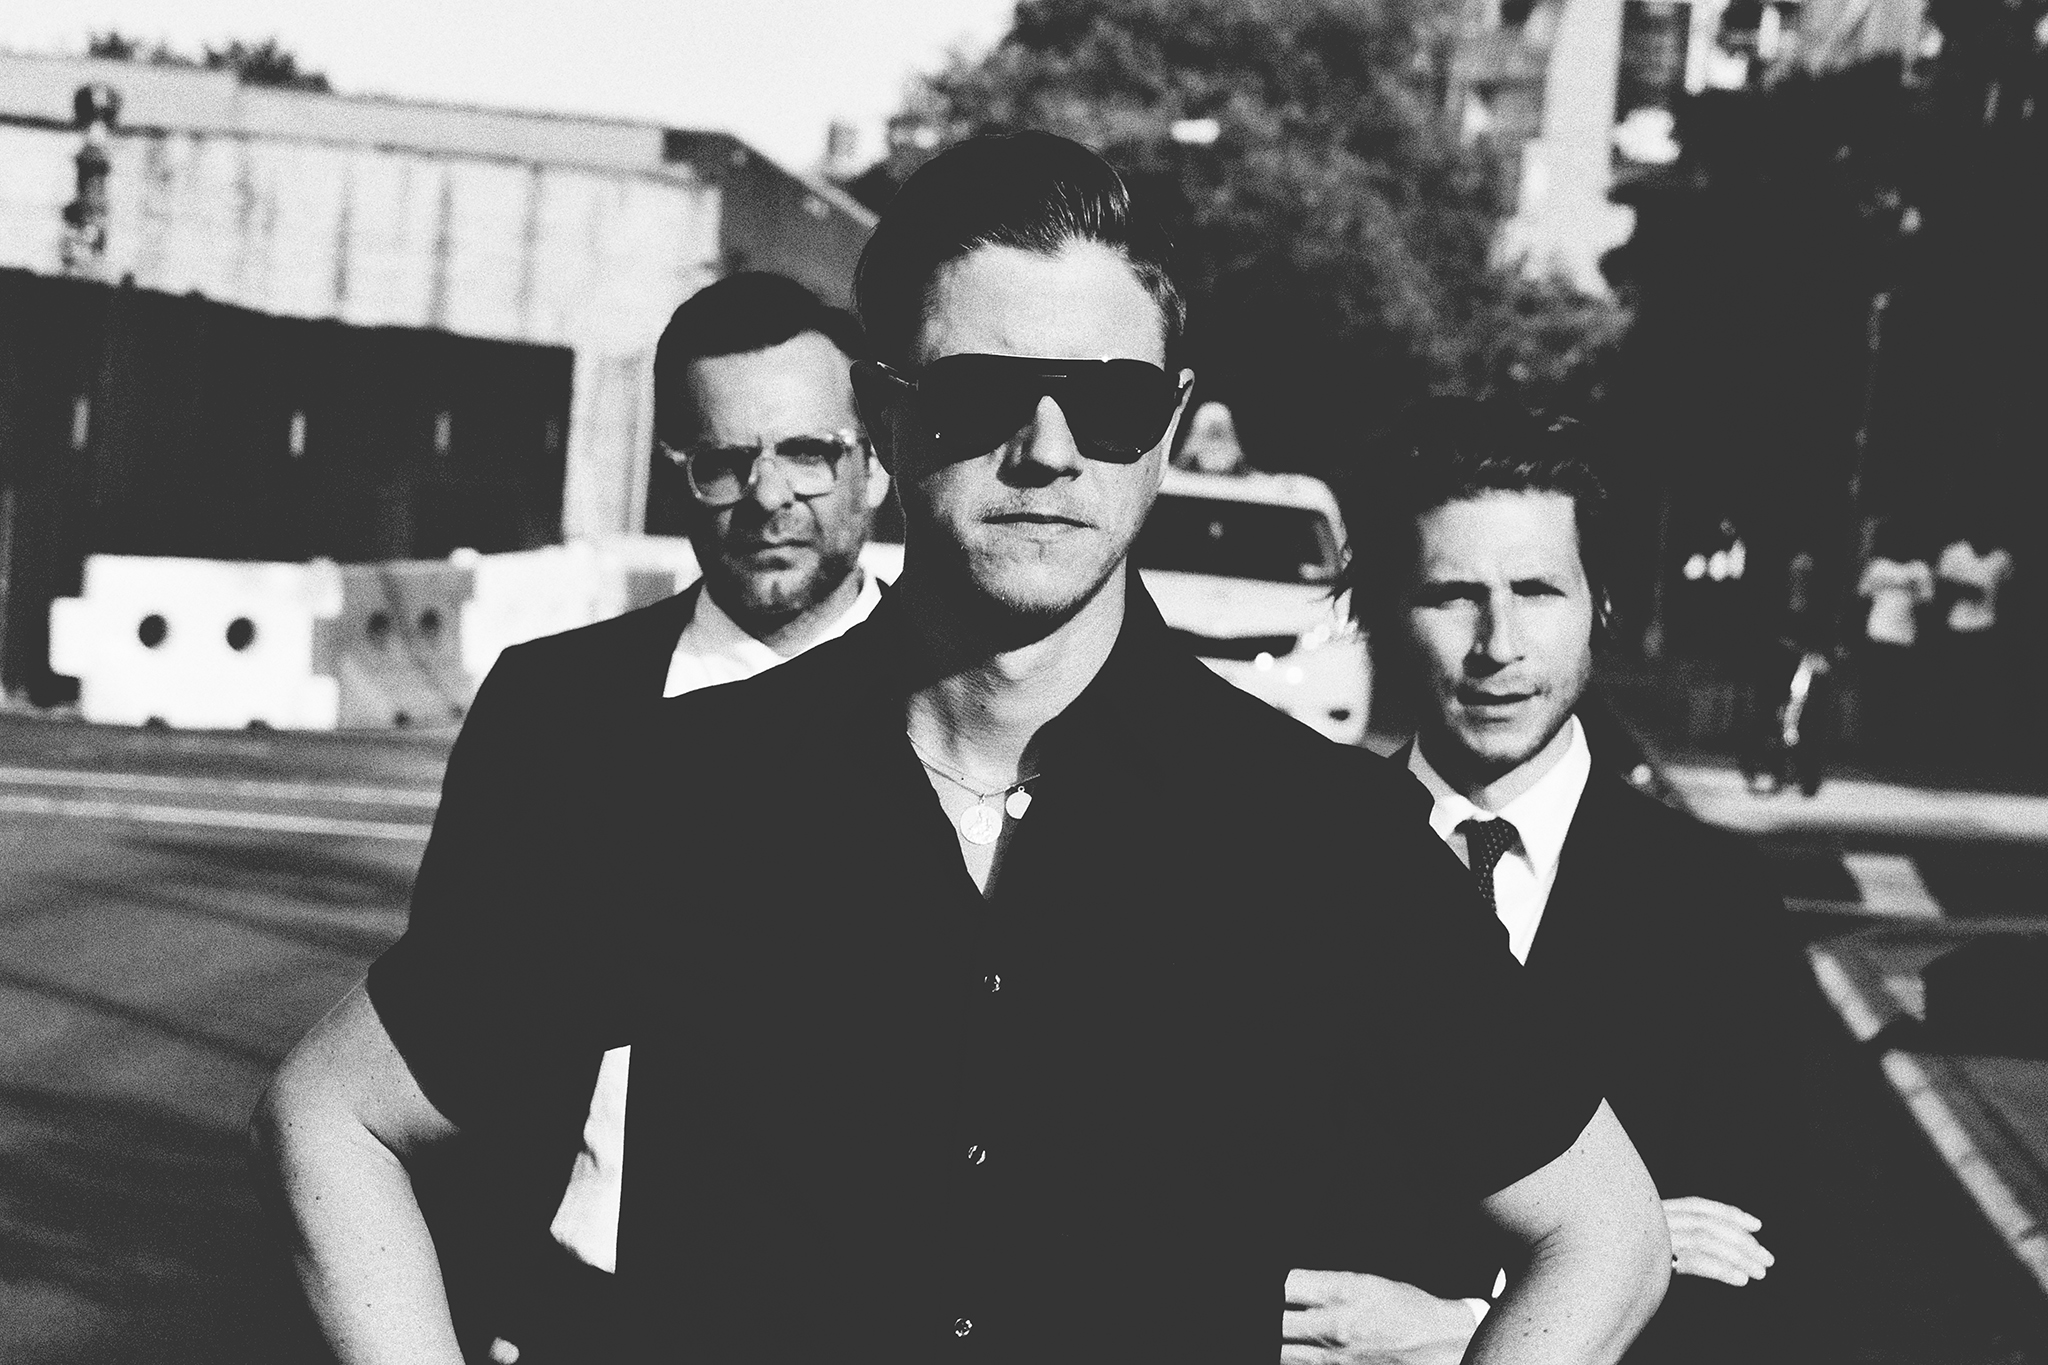 Interpol announce remix LP, 'El Pintor Remixes'